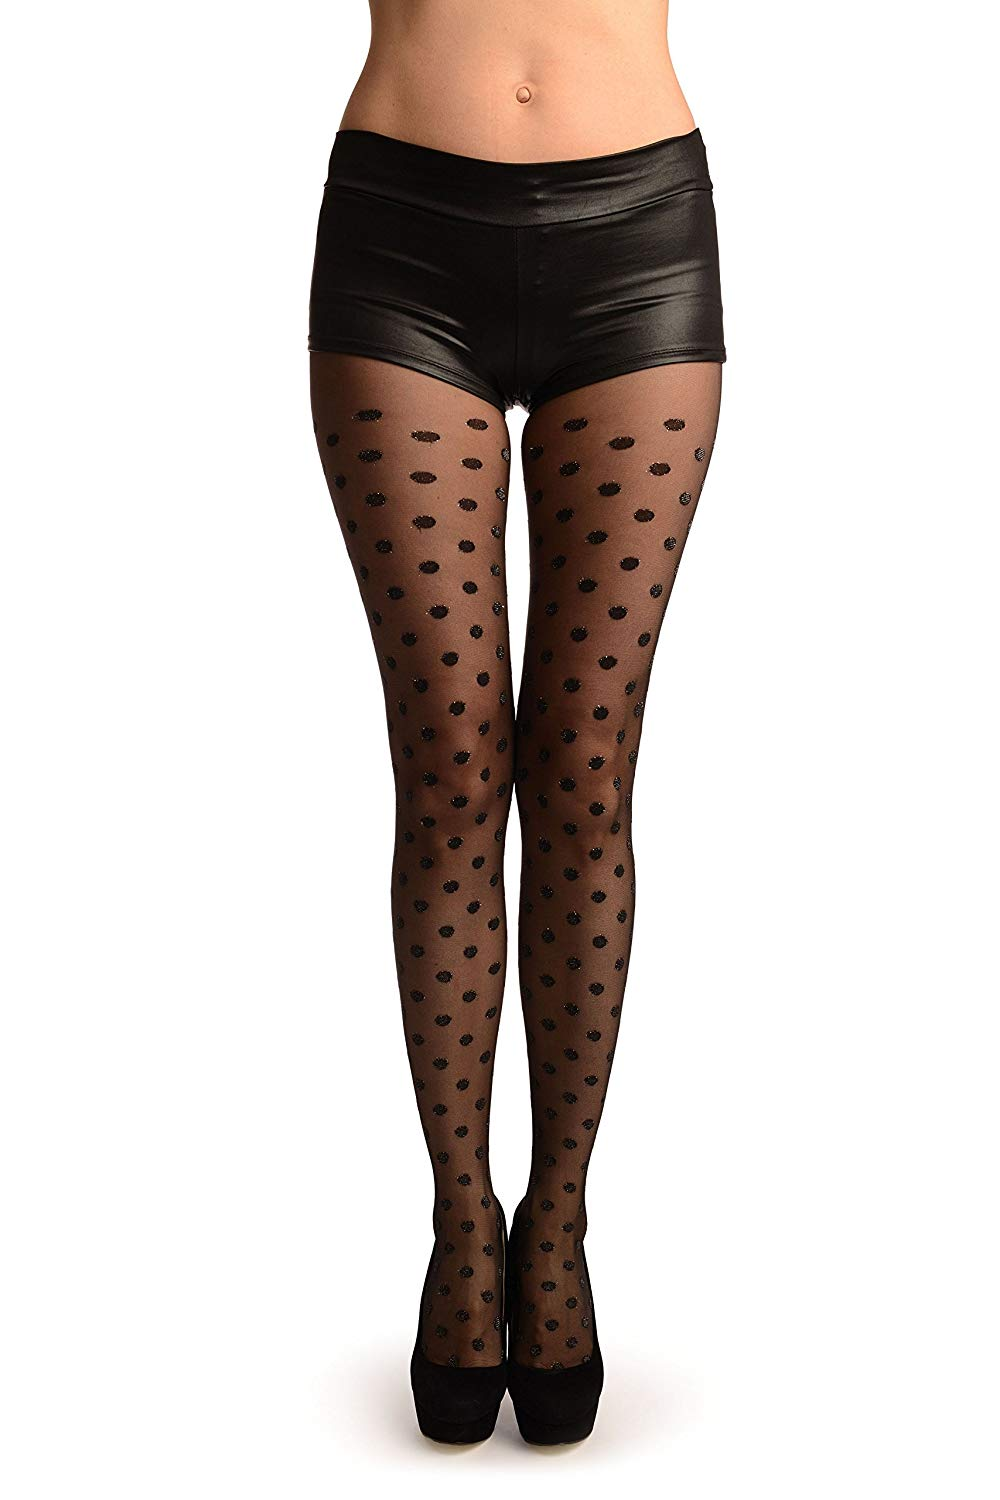 3eed4904ce8 Get Quotations · Black With Medium Shiny Woven Polka Dot Tights - Pantyhose  (Tights)